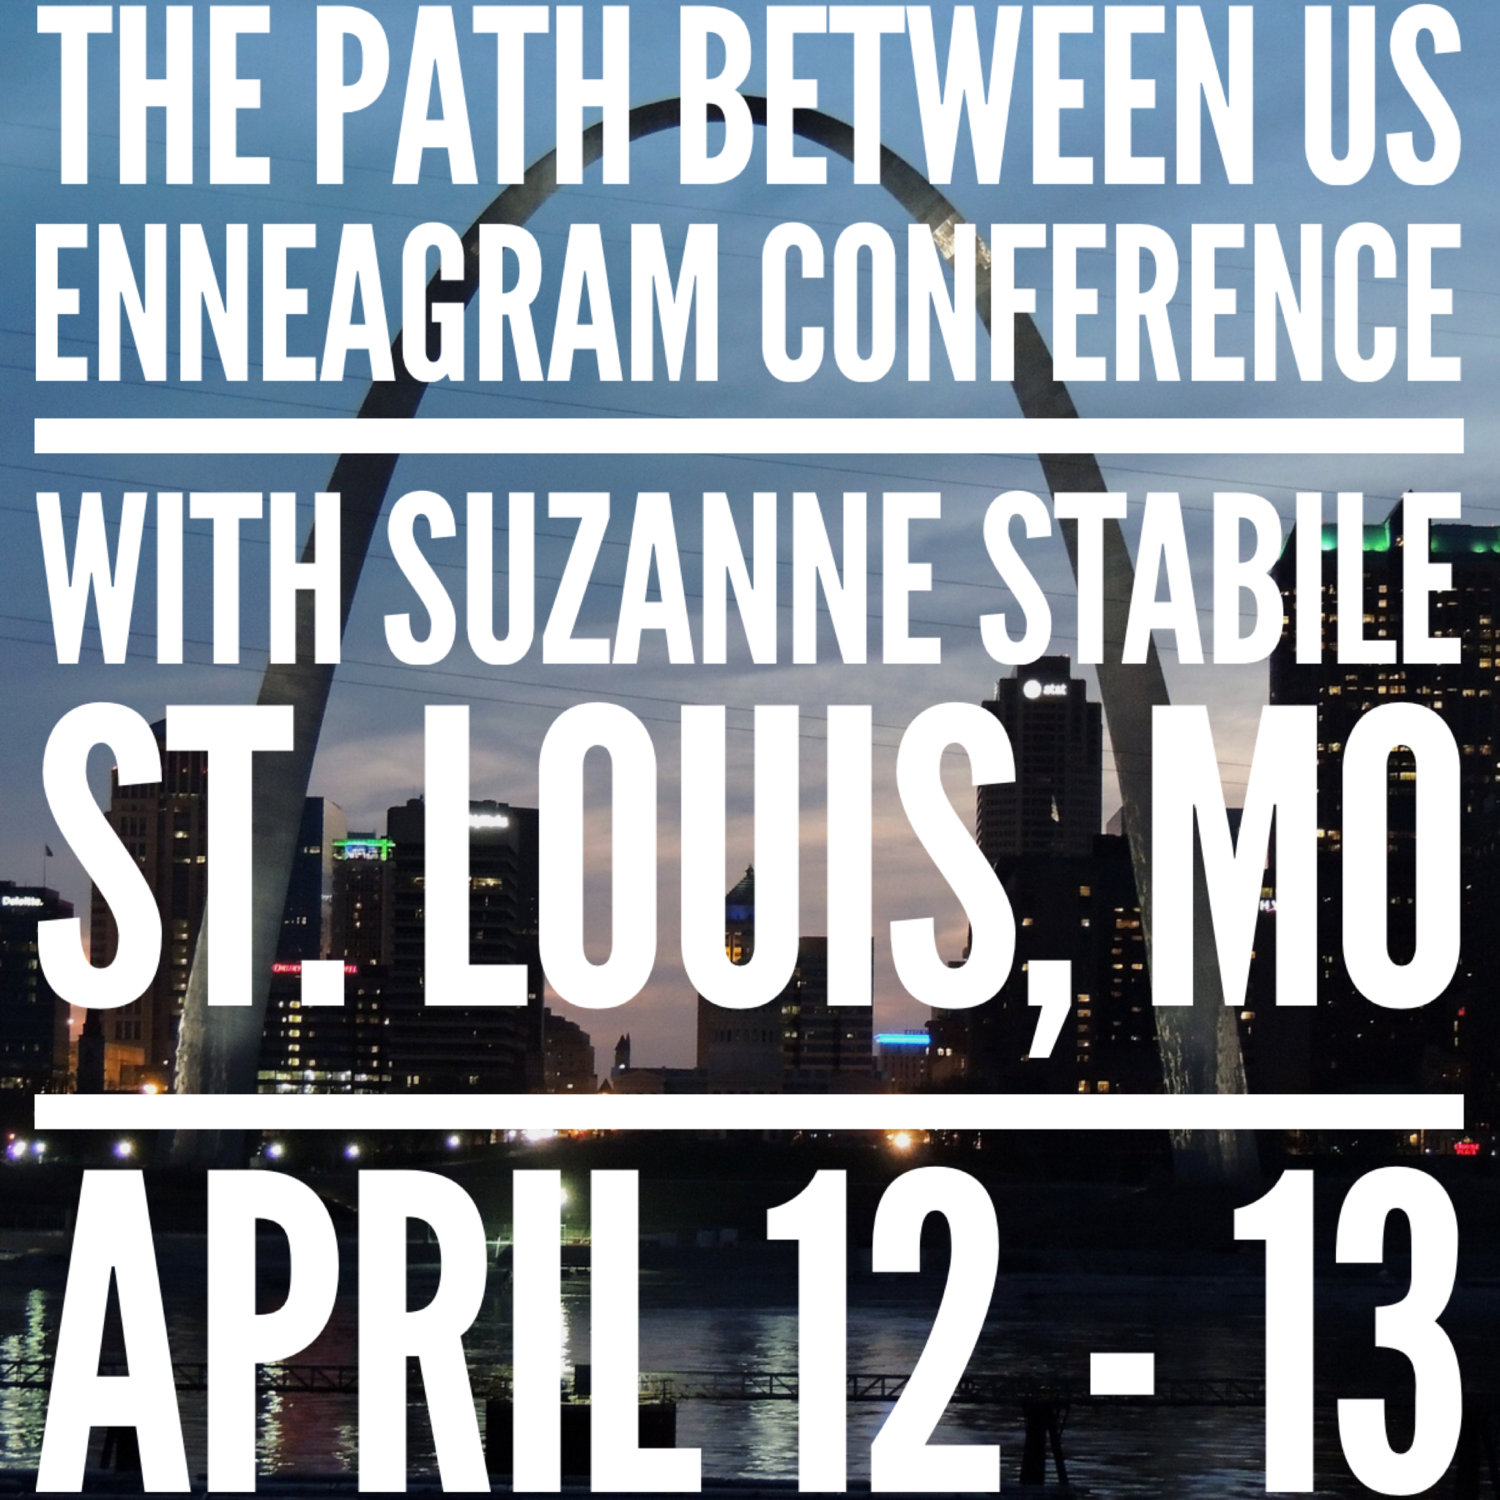 The Enneagram and Relationships: St. Louis, MO